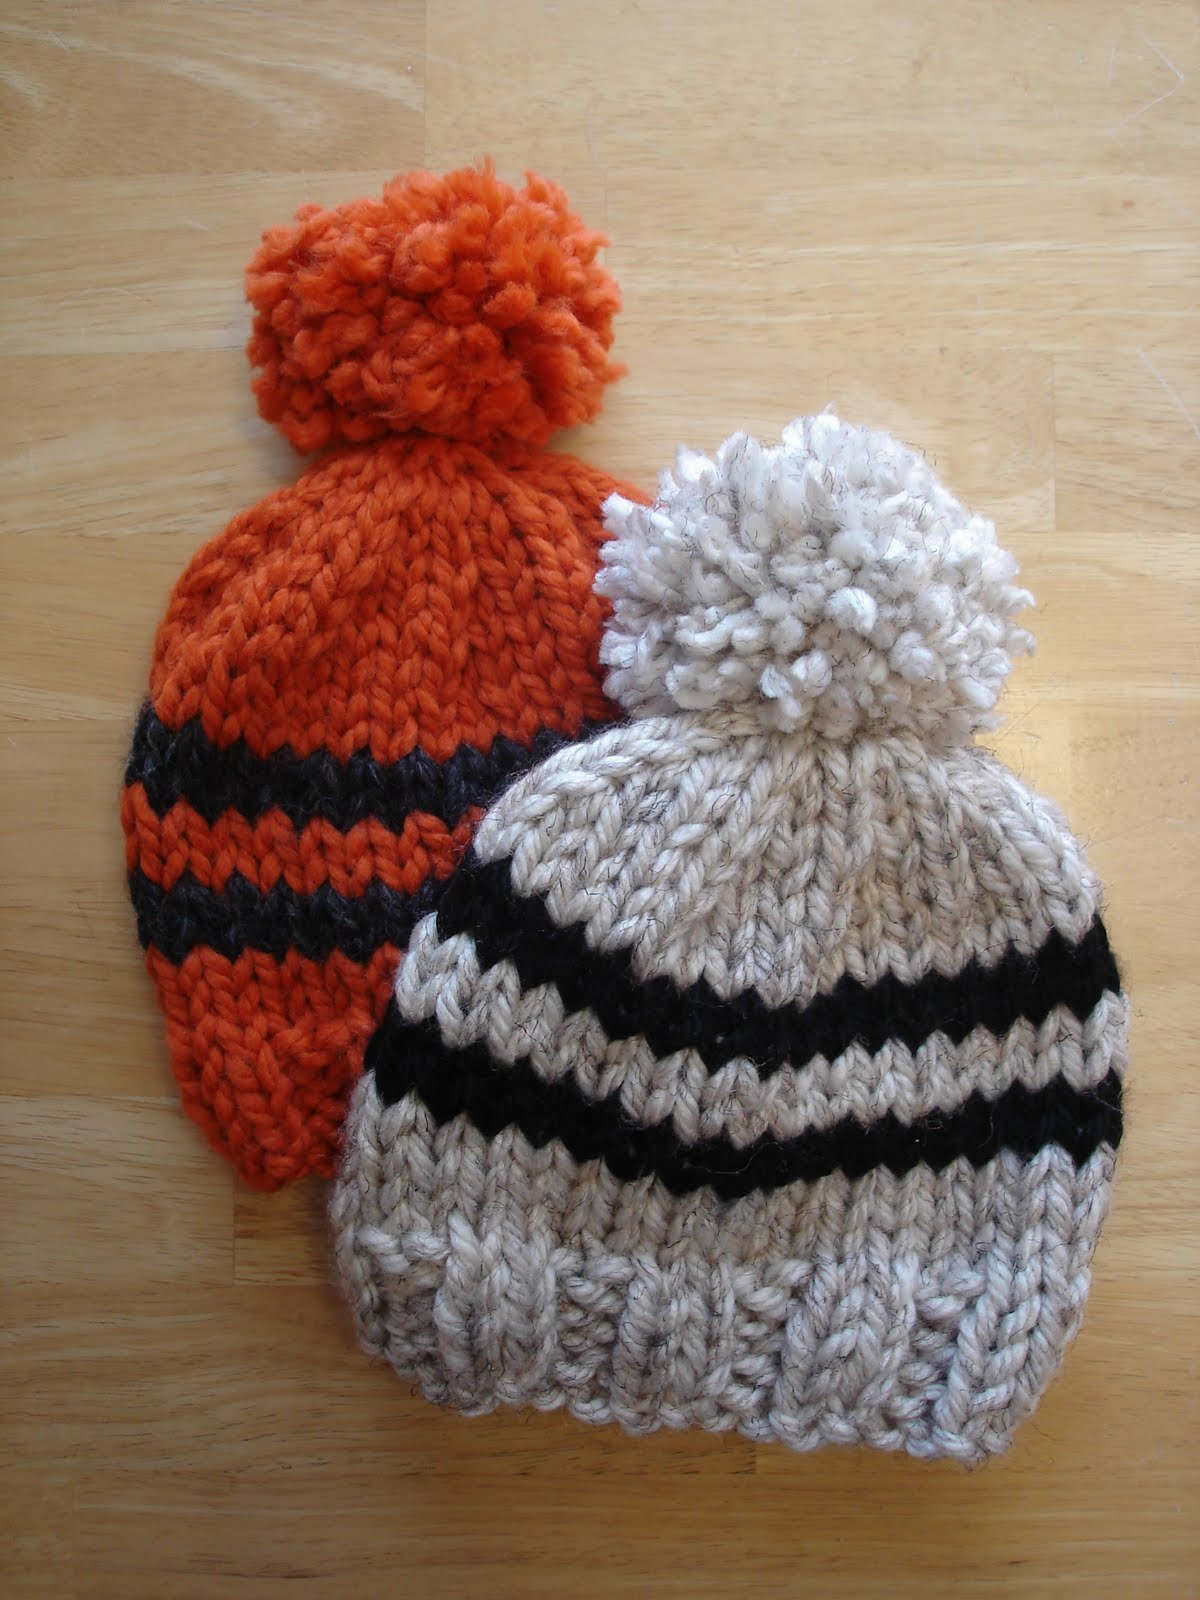 Easy Knitting Patterns For Toddler Hats : Fiber Flux: Free Knitting Pattern! Toddler Rugby Hat...